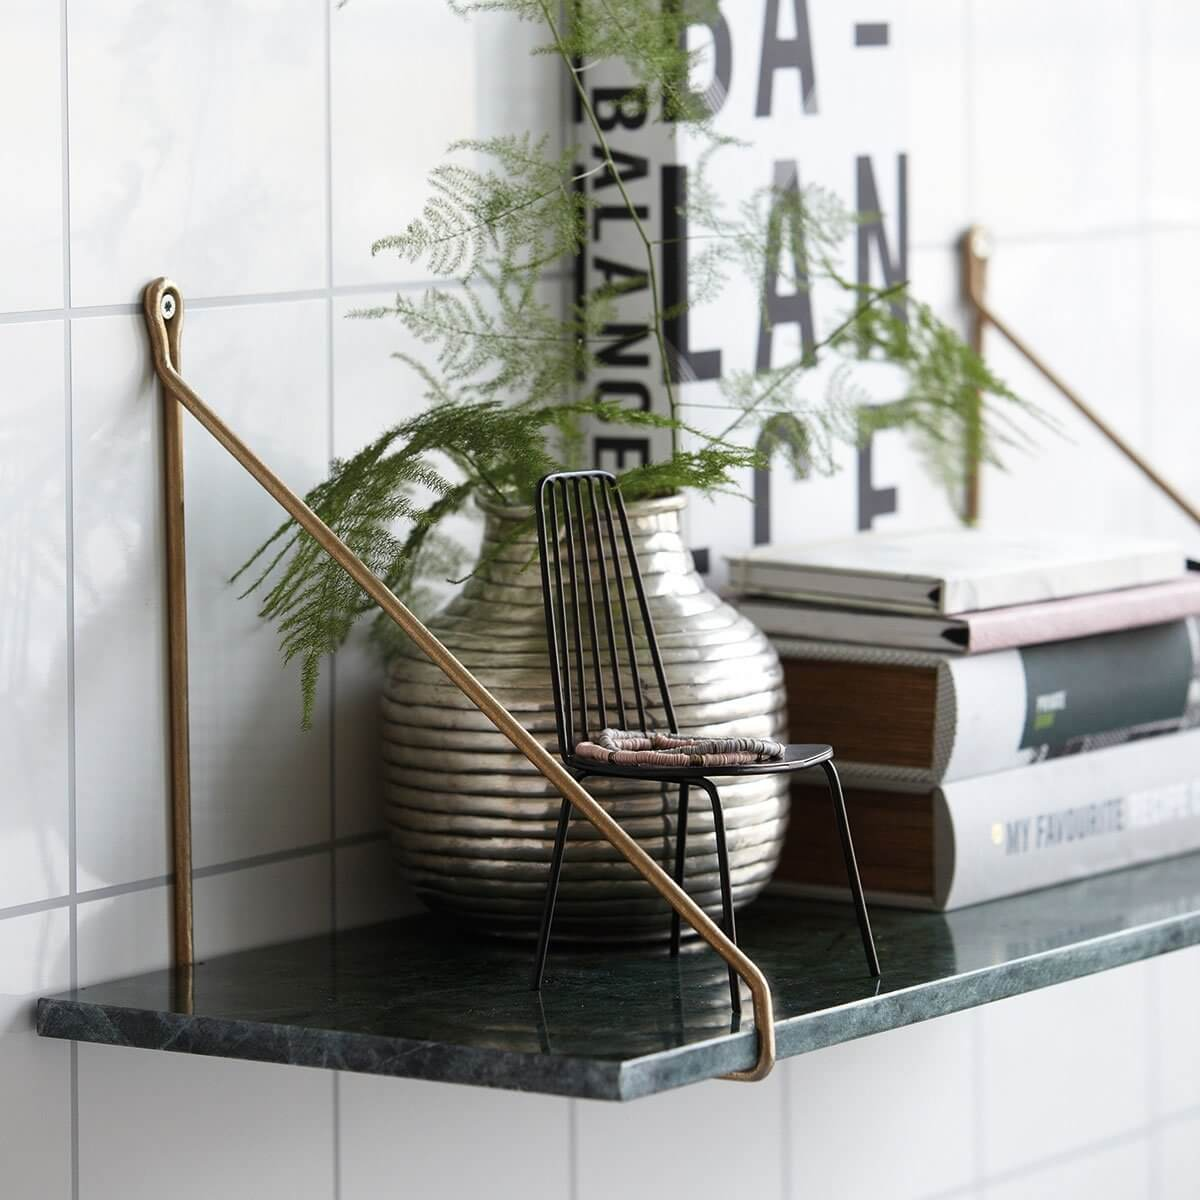 Green Marble Shelf with Brass Brackets - save 15%